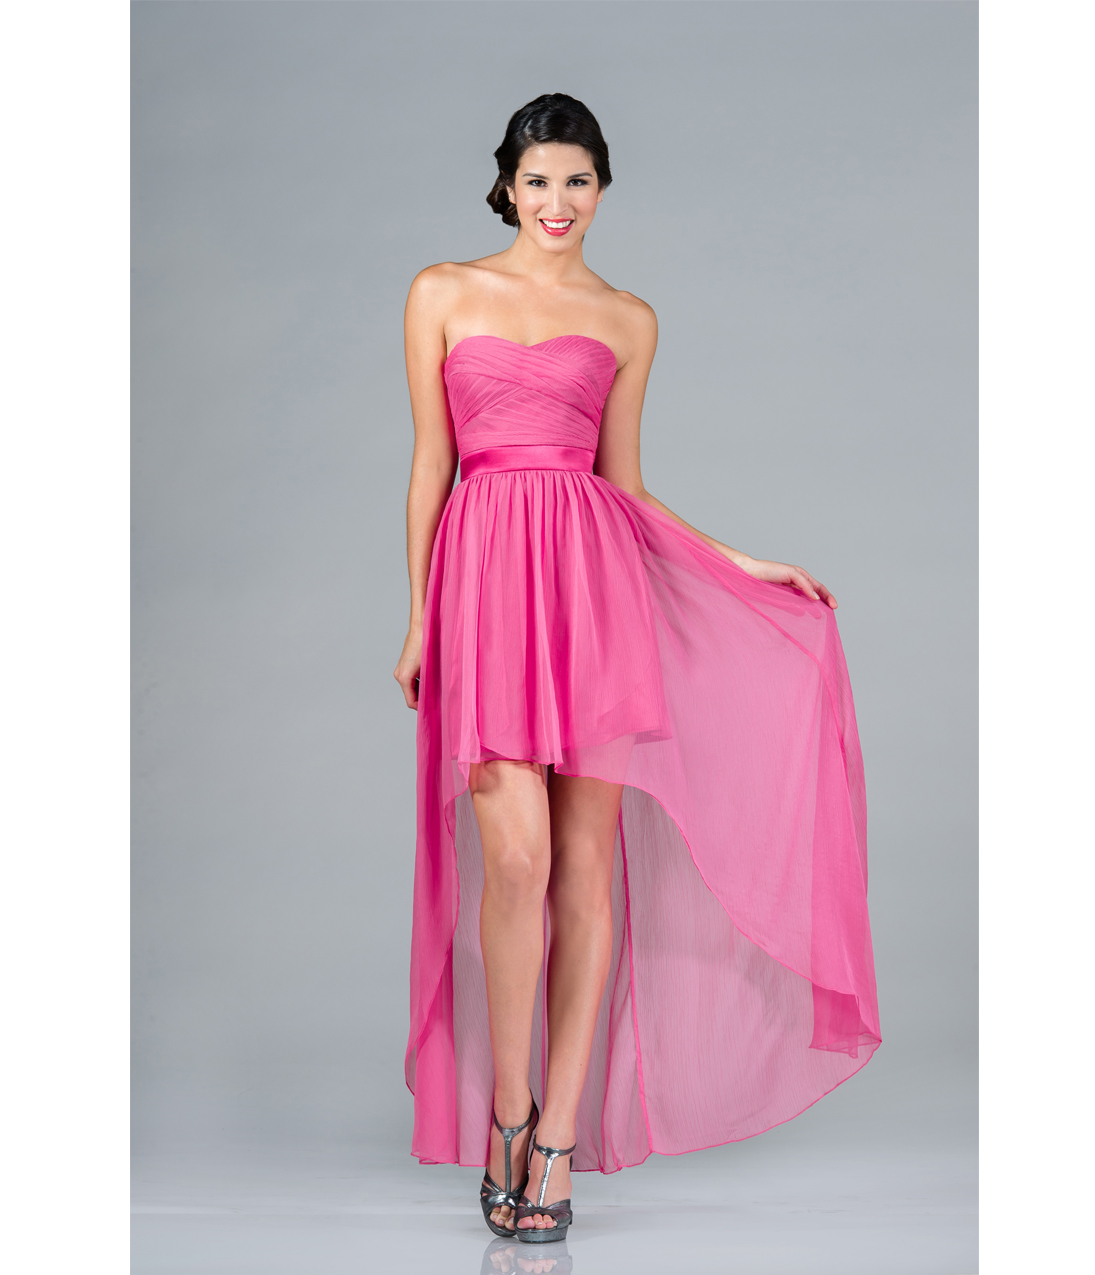 2013 Prom Dresses- Hot Pink Strapless High-Low Chiffon Dress ...